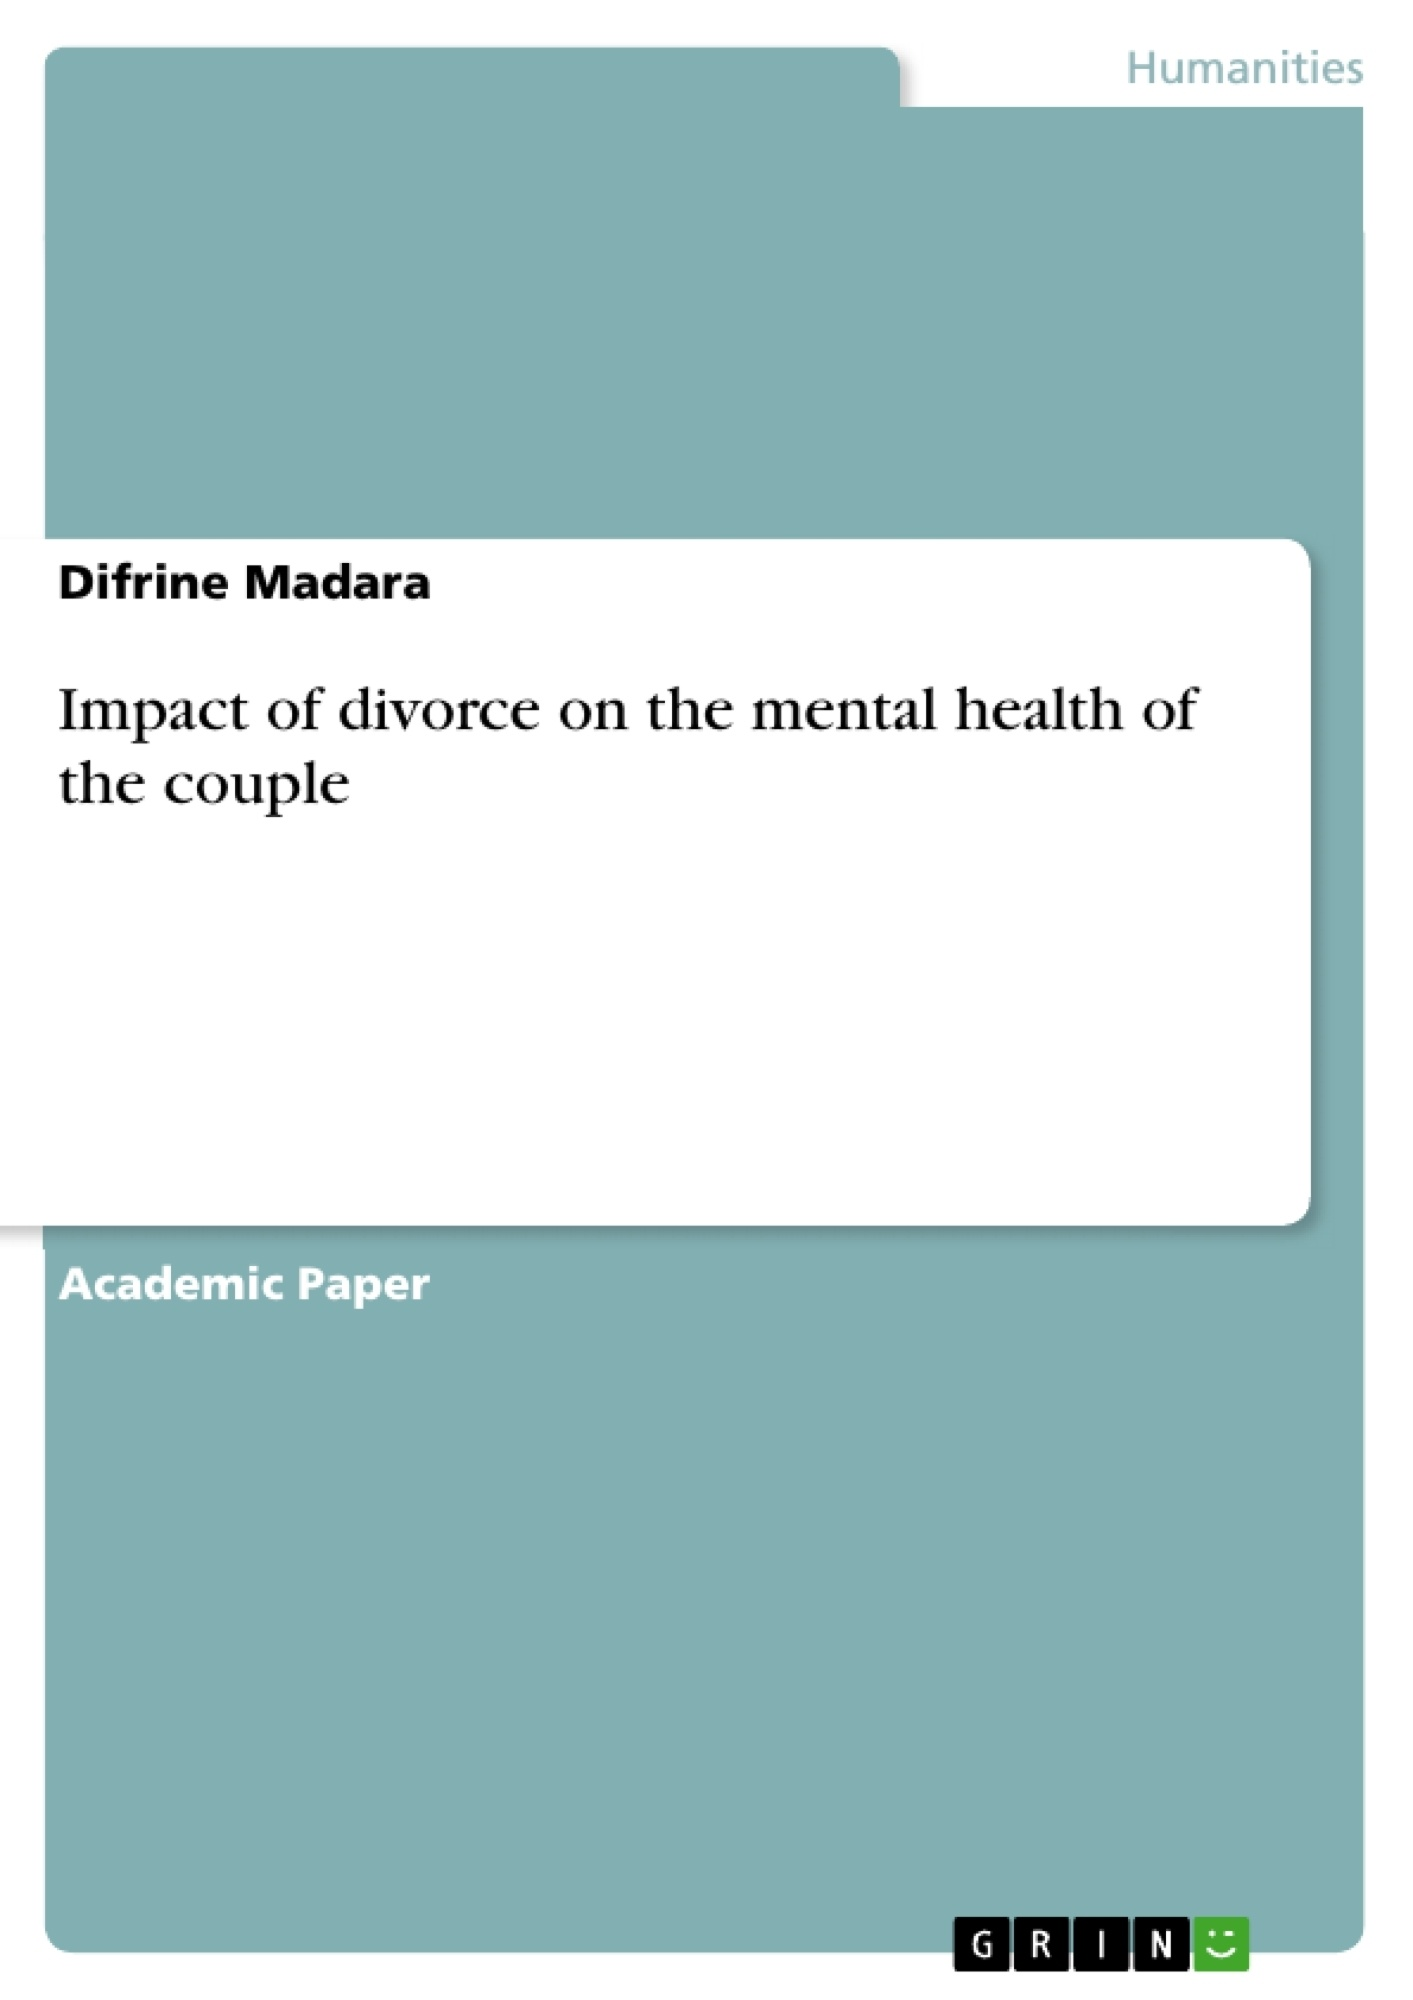 Title: Impact of divorce on the mental health of the couple